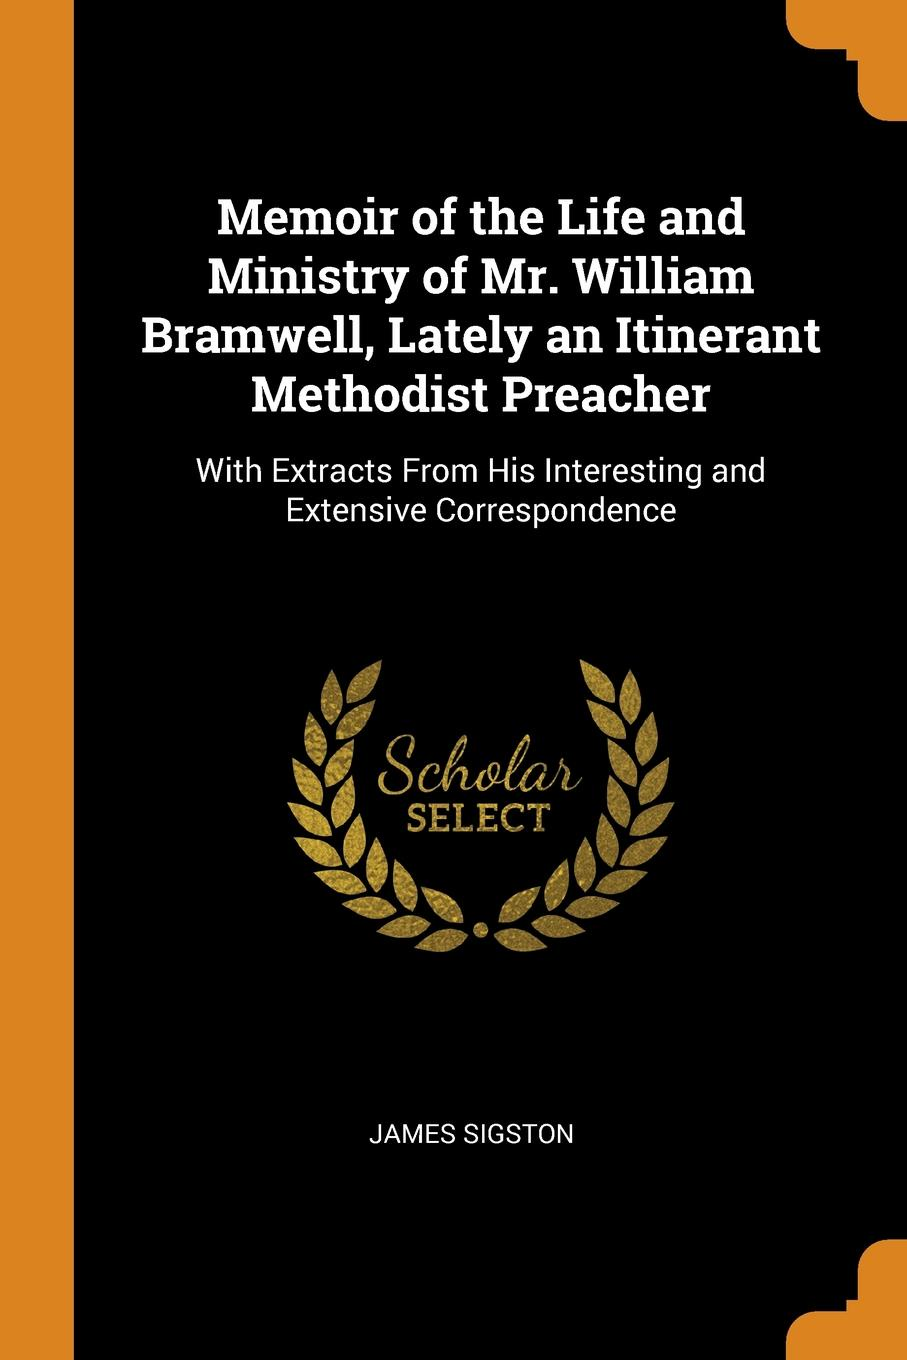 Memoir of the Life and Ministry of Mr. William Bramwell, Lately an Itinerant Methodist Preacher. With Extracts From His Interesting and Extensive Correspondence. James Sigston